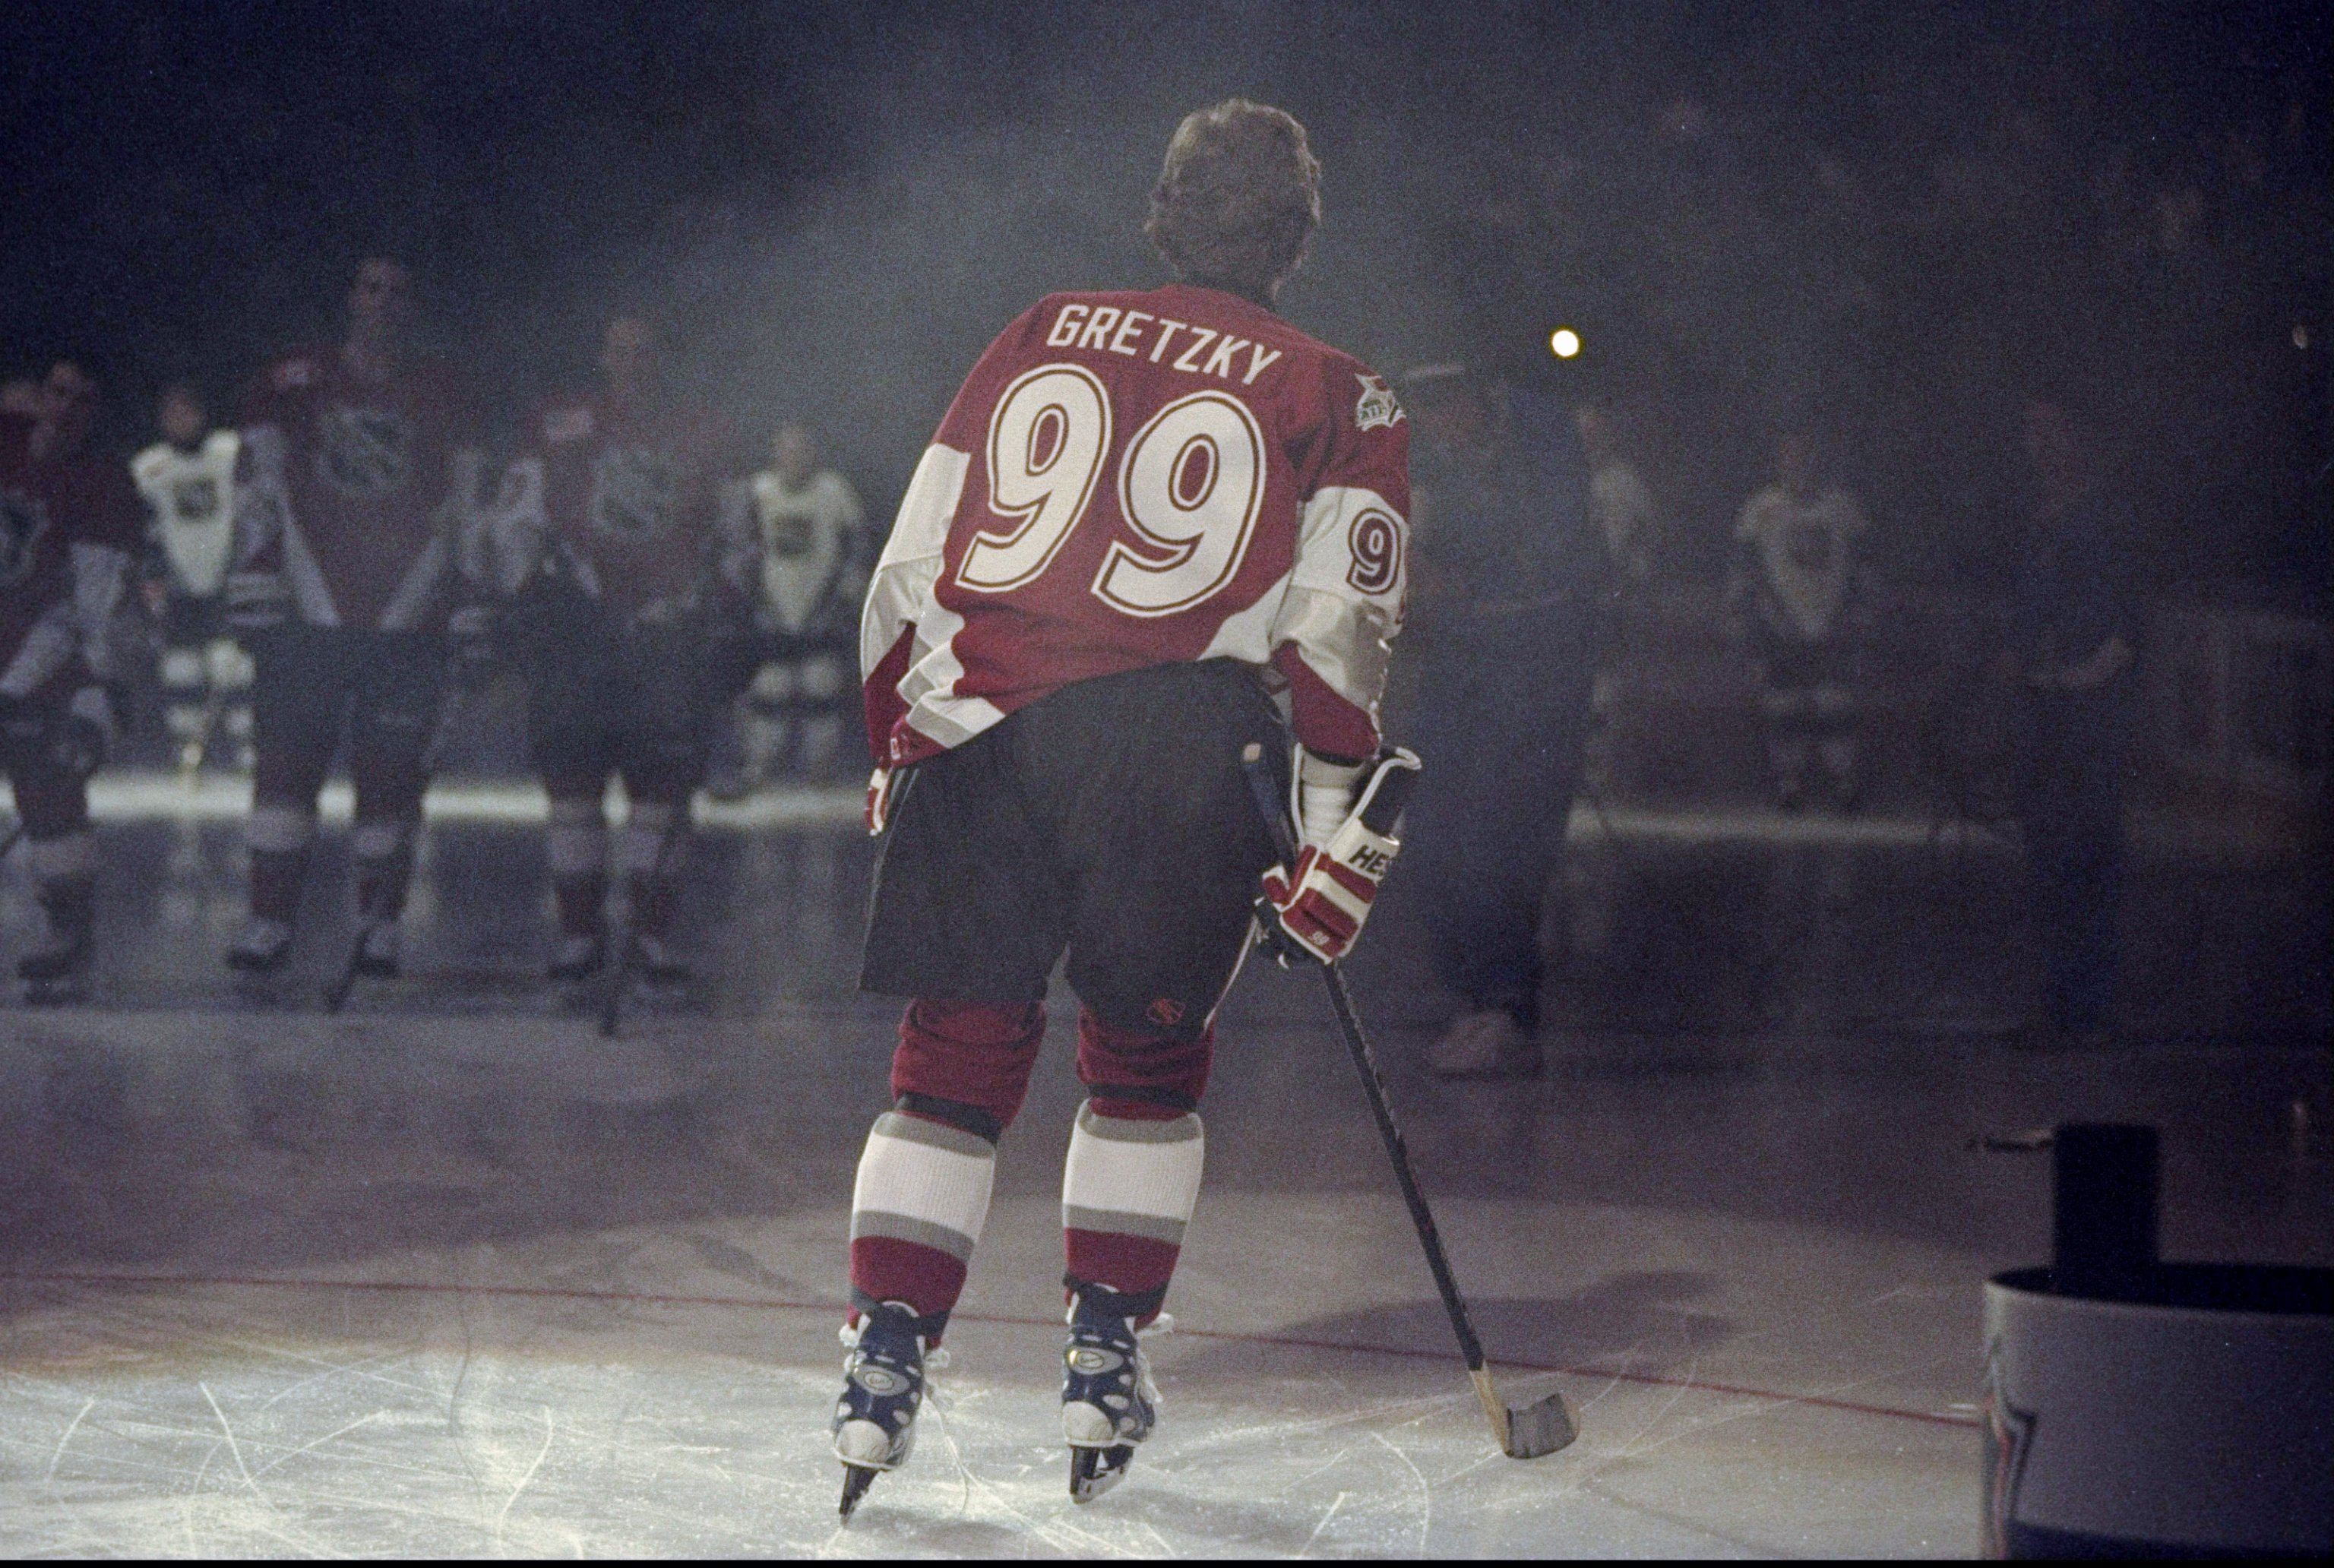 Who knew there was honor in Hockey?